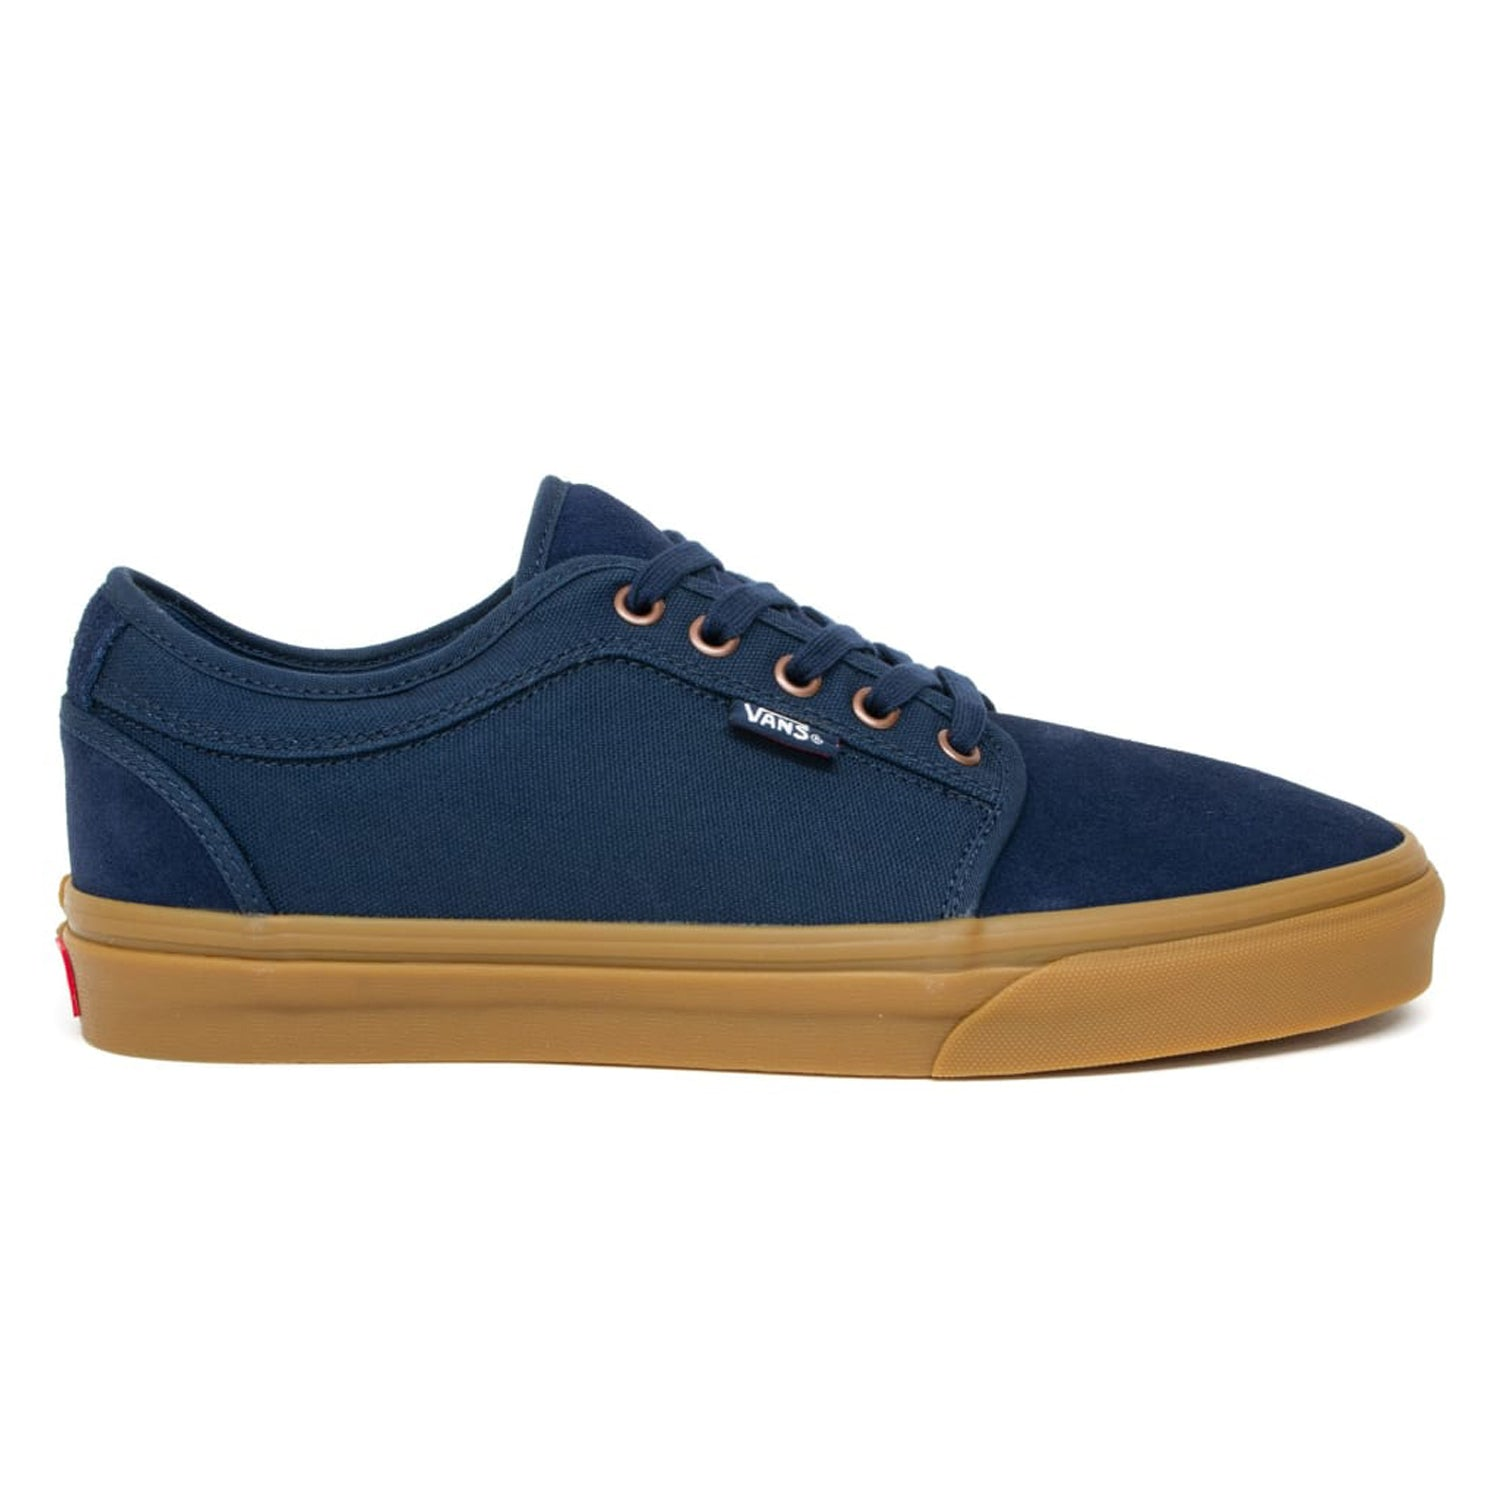 Vans Chukka Low Dress Blues/Gum